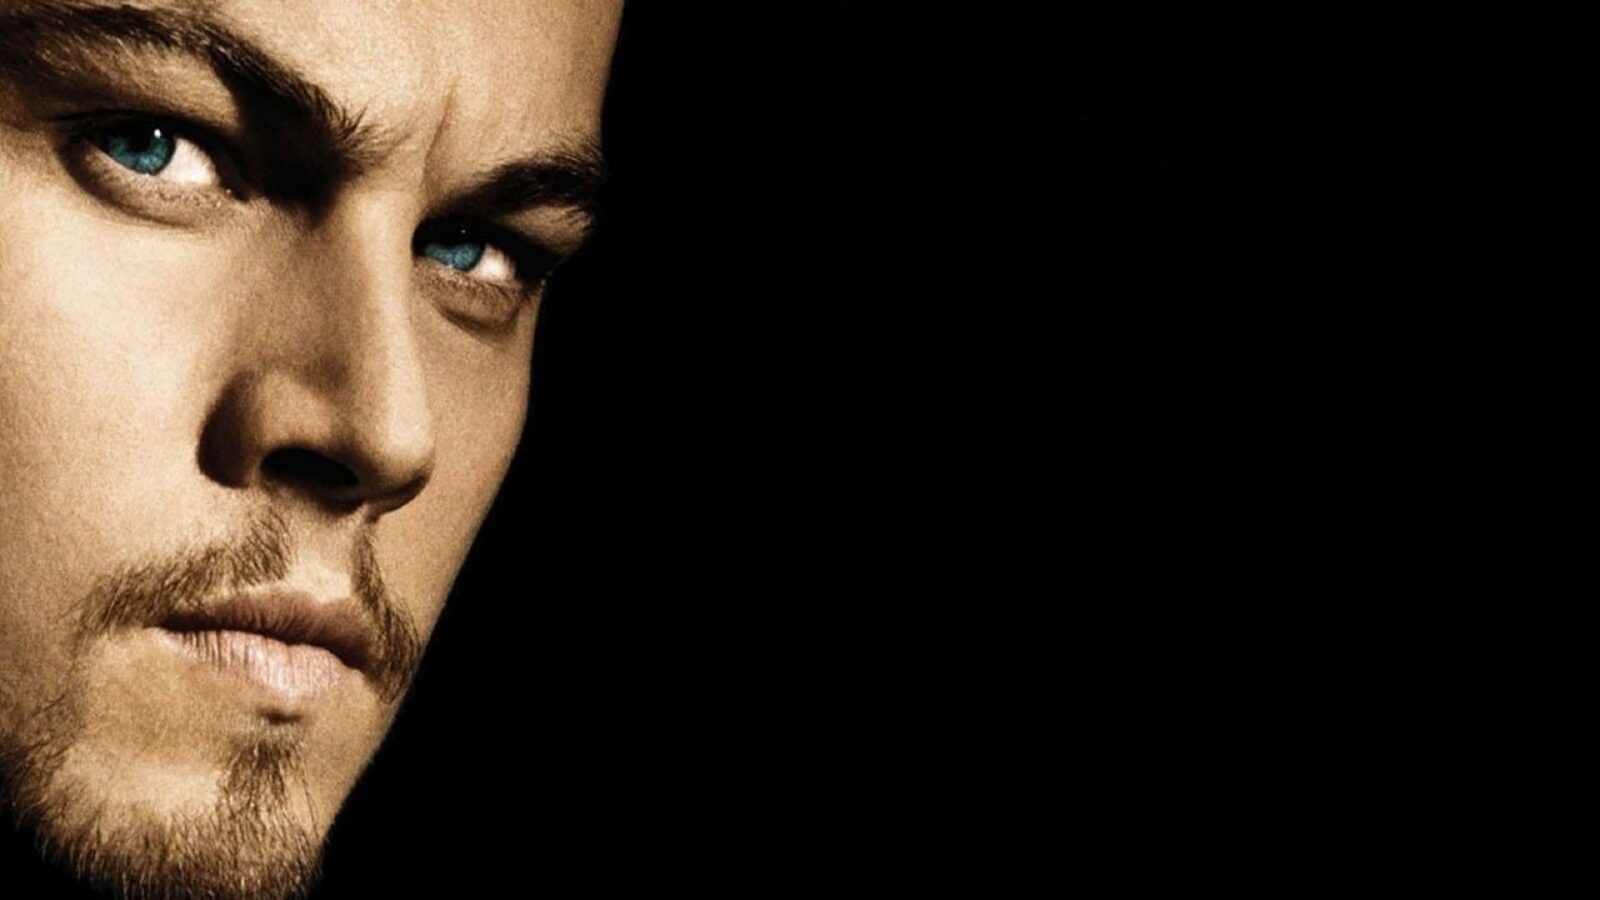 Leonardo DiCaprio face High Quality wallpapers